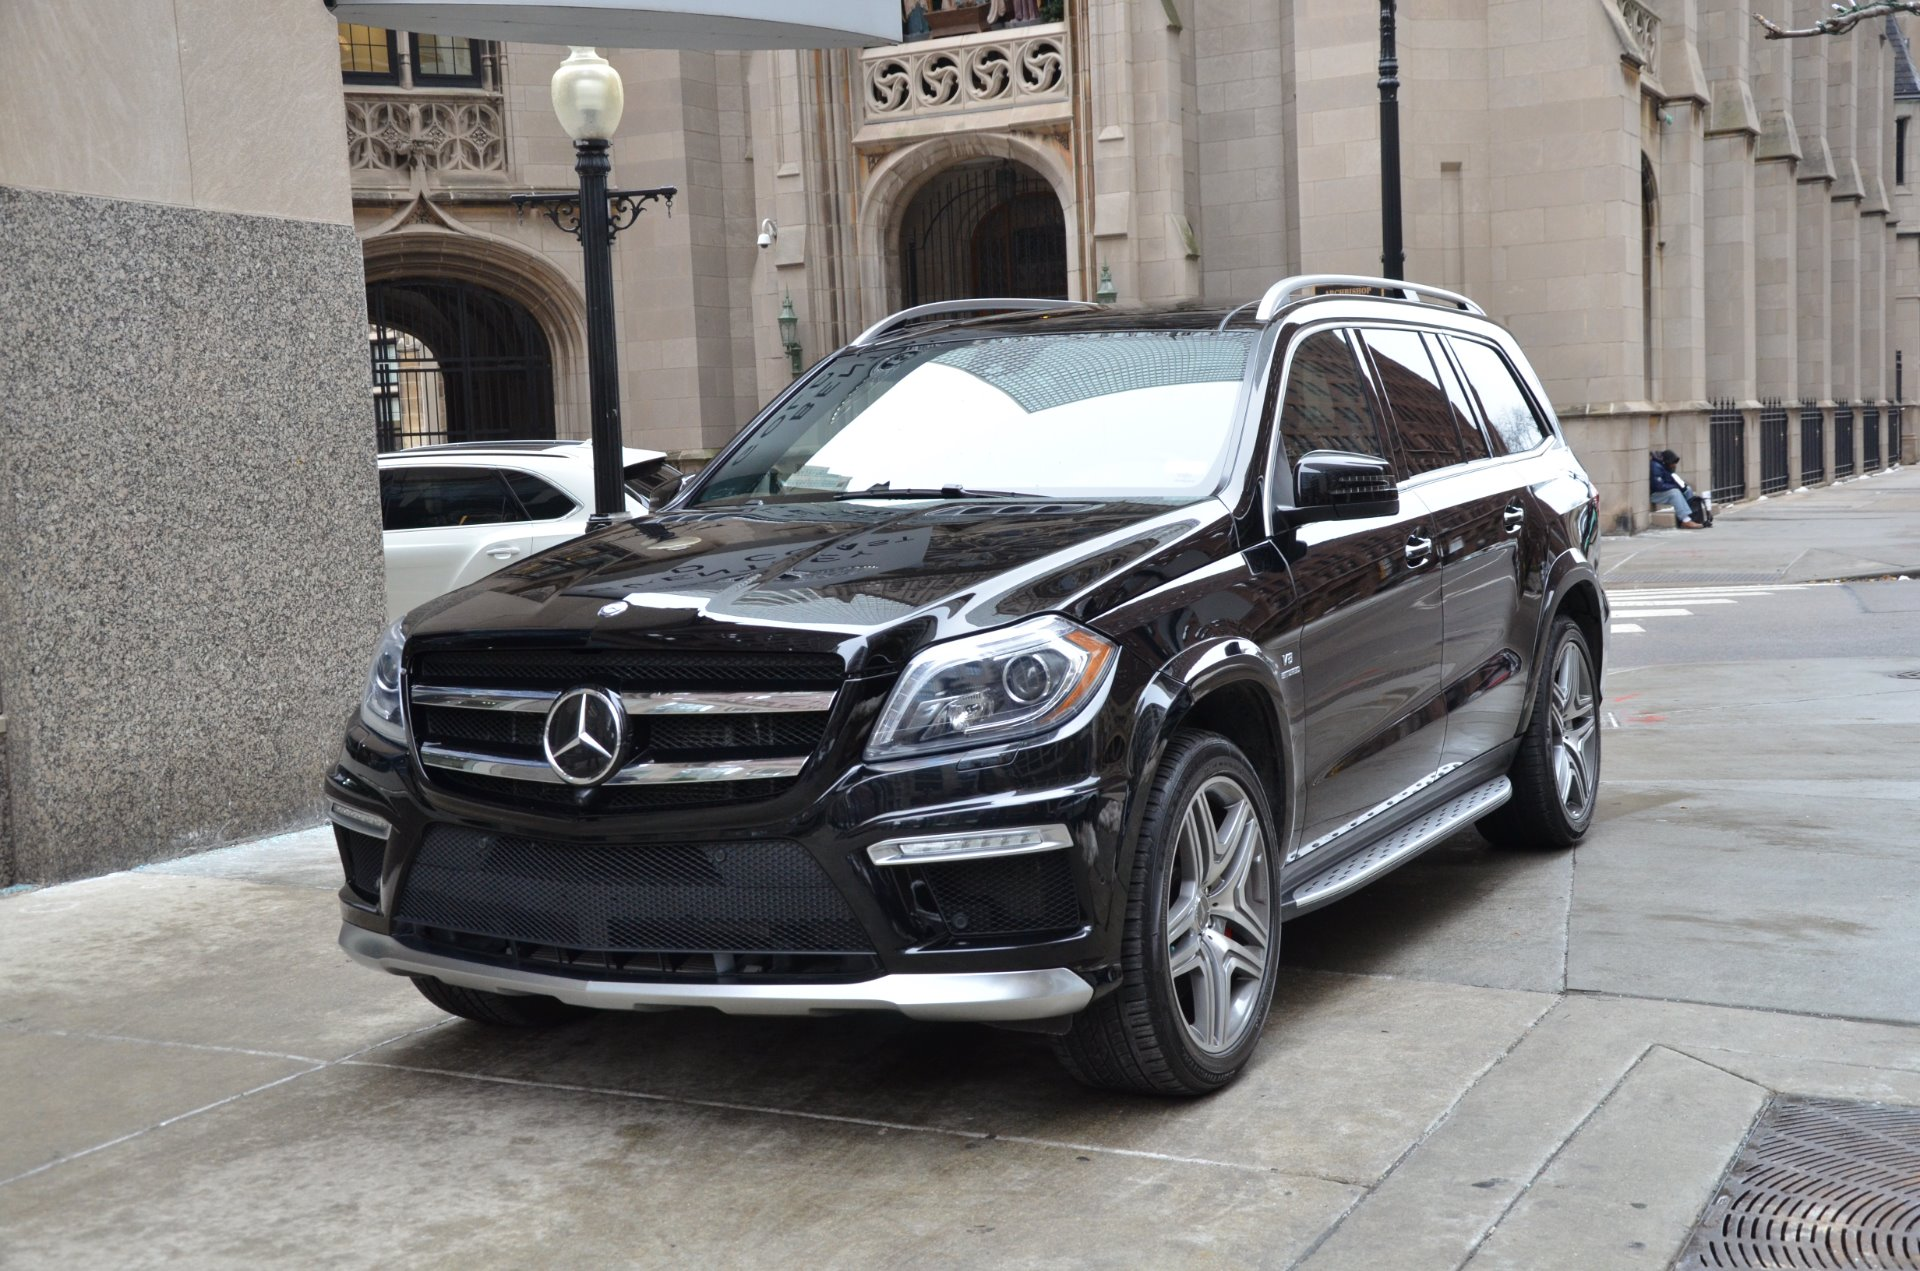 2014 mercedes benz gl class gl63 amg stock b857a for for Mercedes benz of chicago service center chicago il